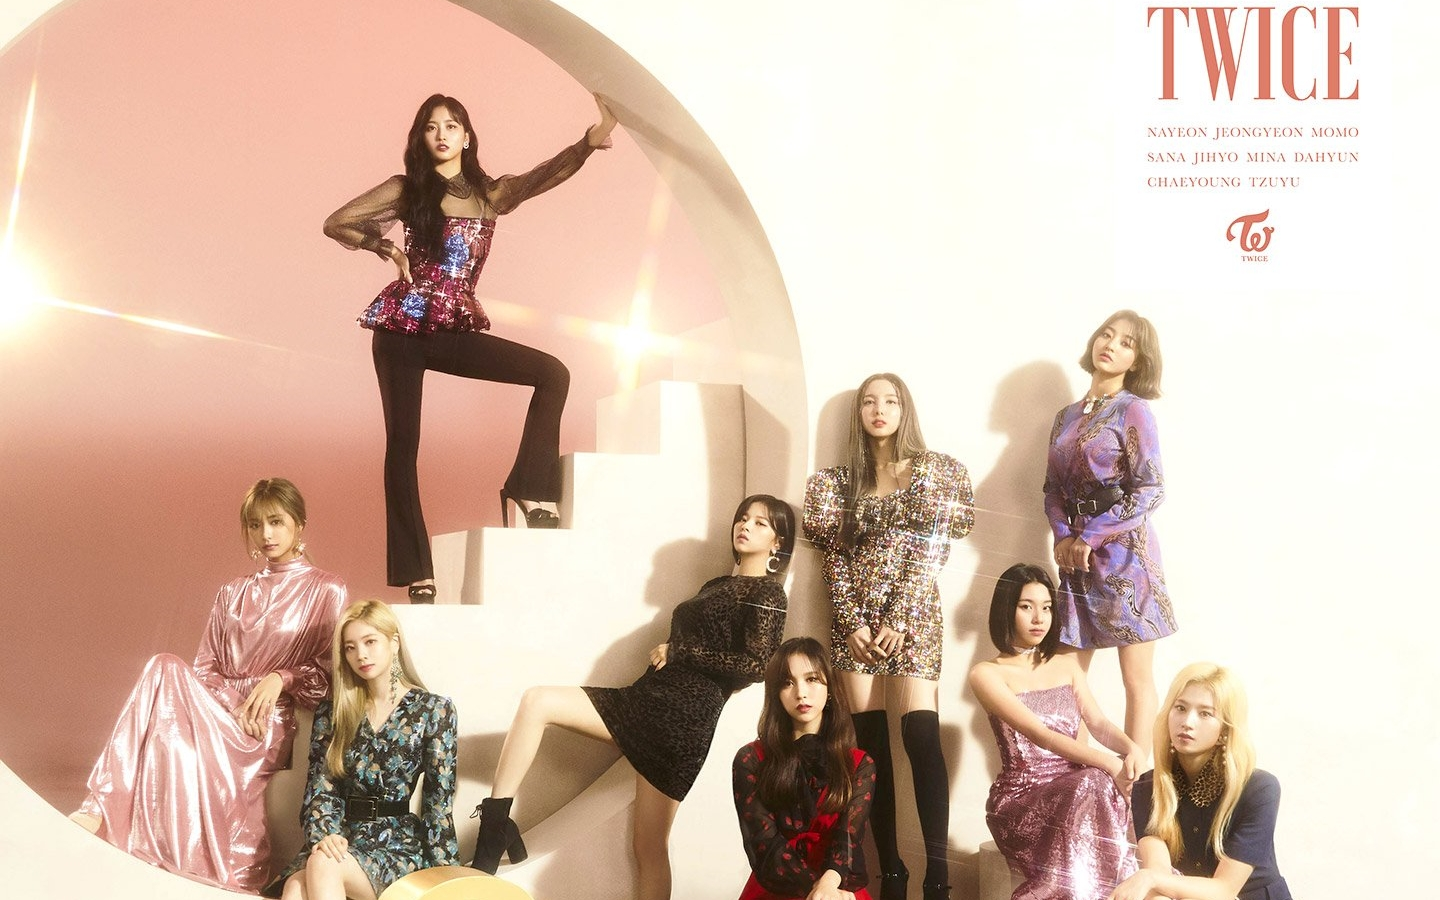 The album '&TWICE' Gets a Gold Certificate in Japan